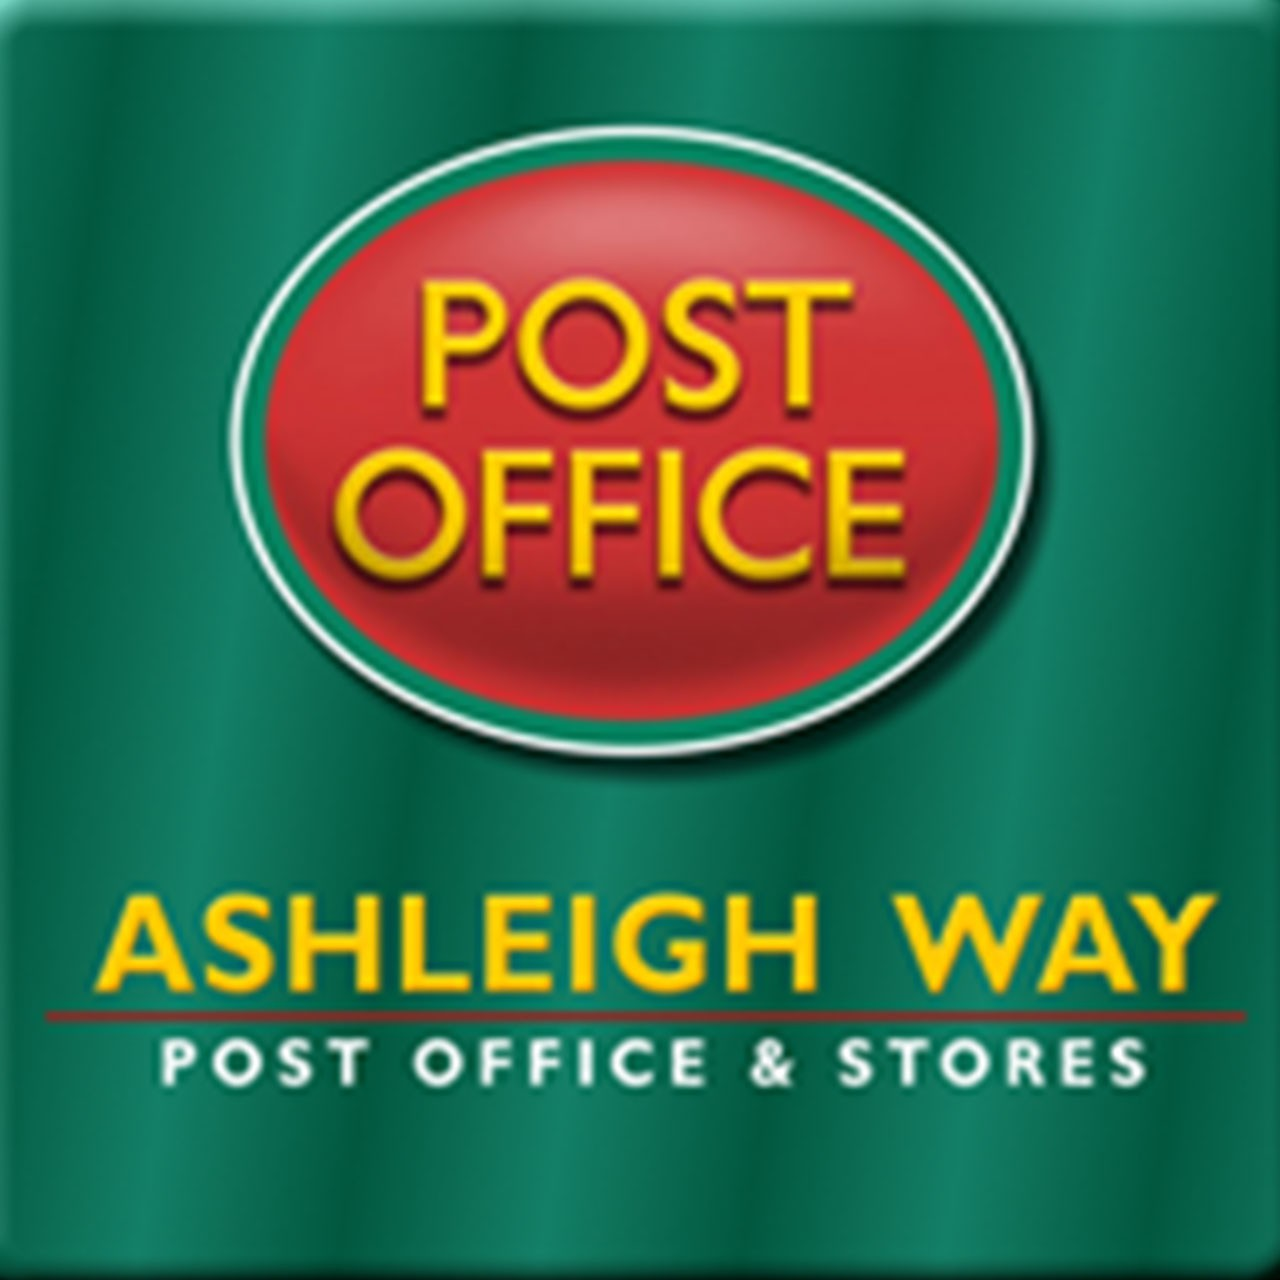 Ashleigh Way Post Office